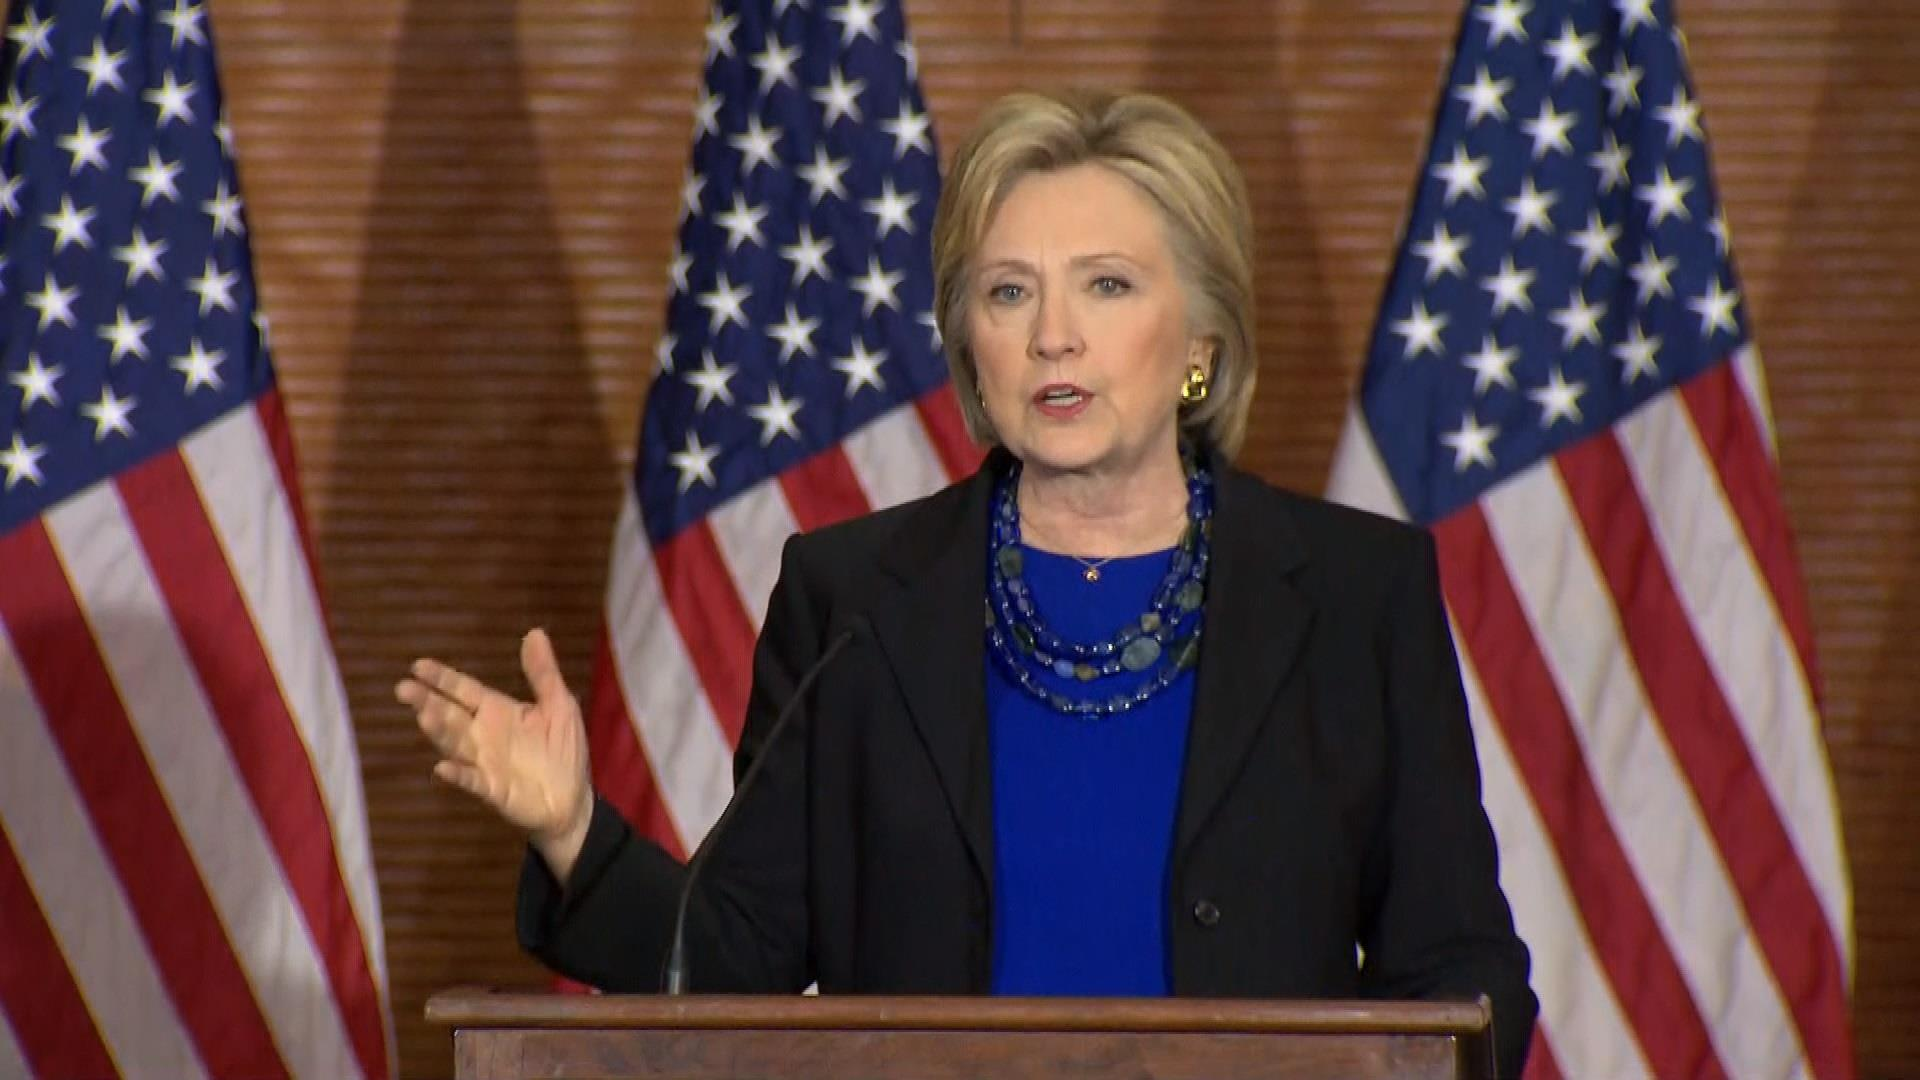 Clinton on the rise of Trump's 'extremism'